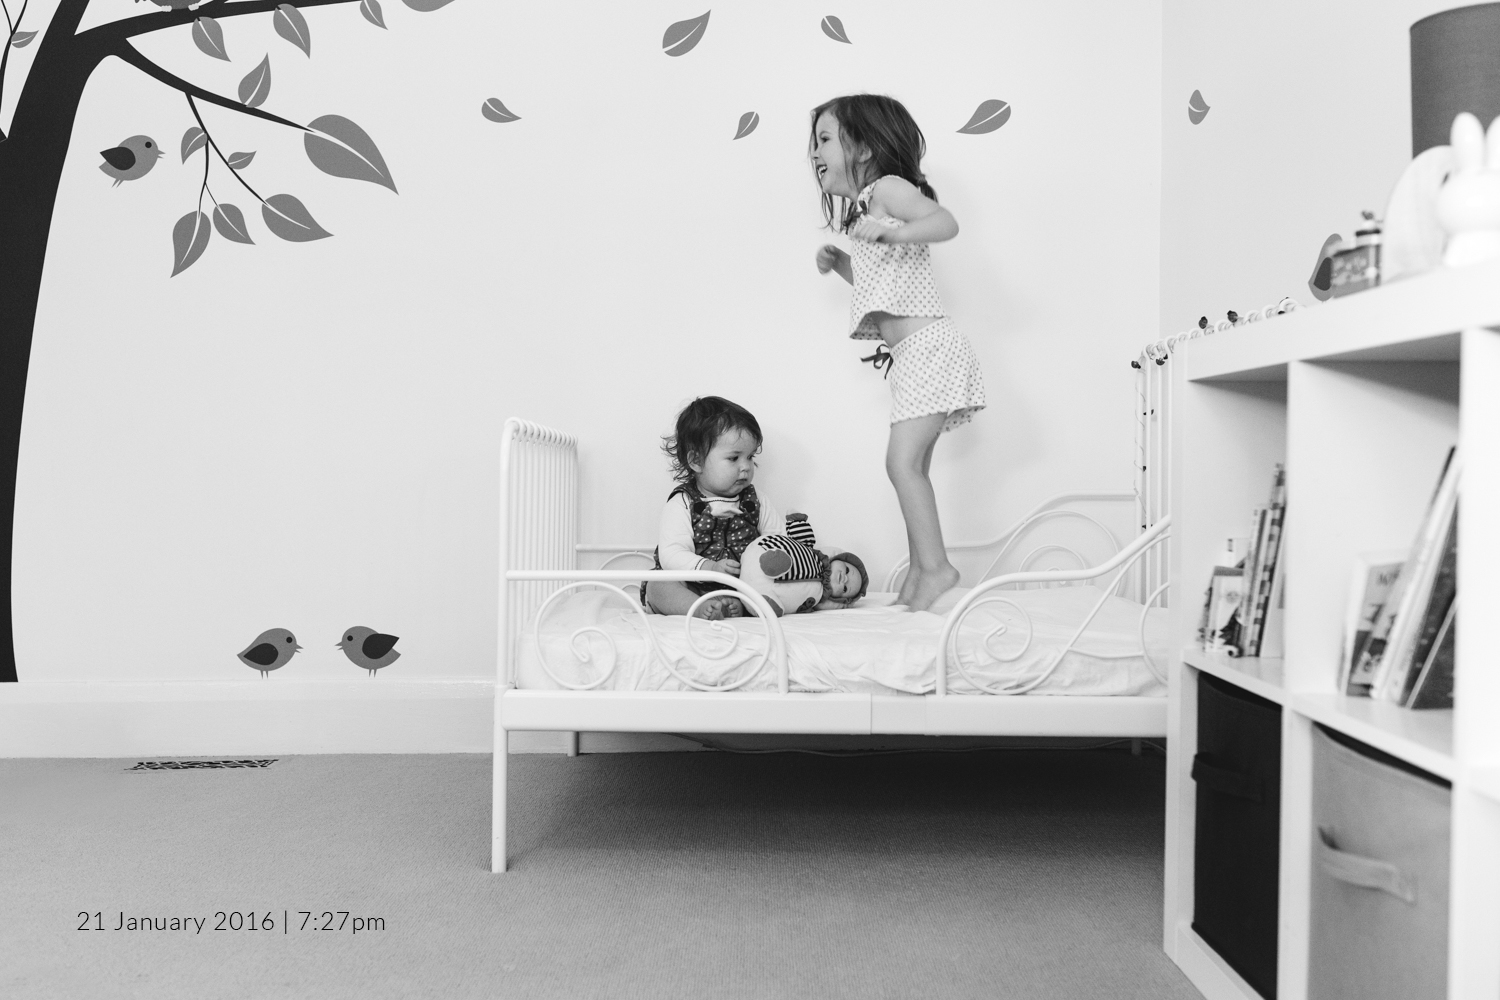 girls-jumping-on-bed-child-photography-photo-a-day-project-day-16.jpg